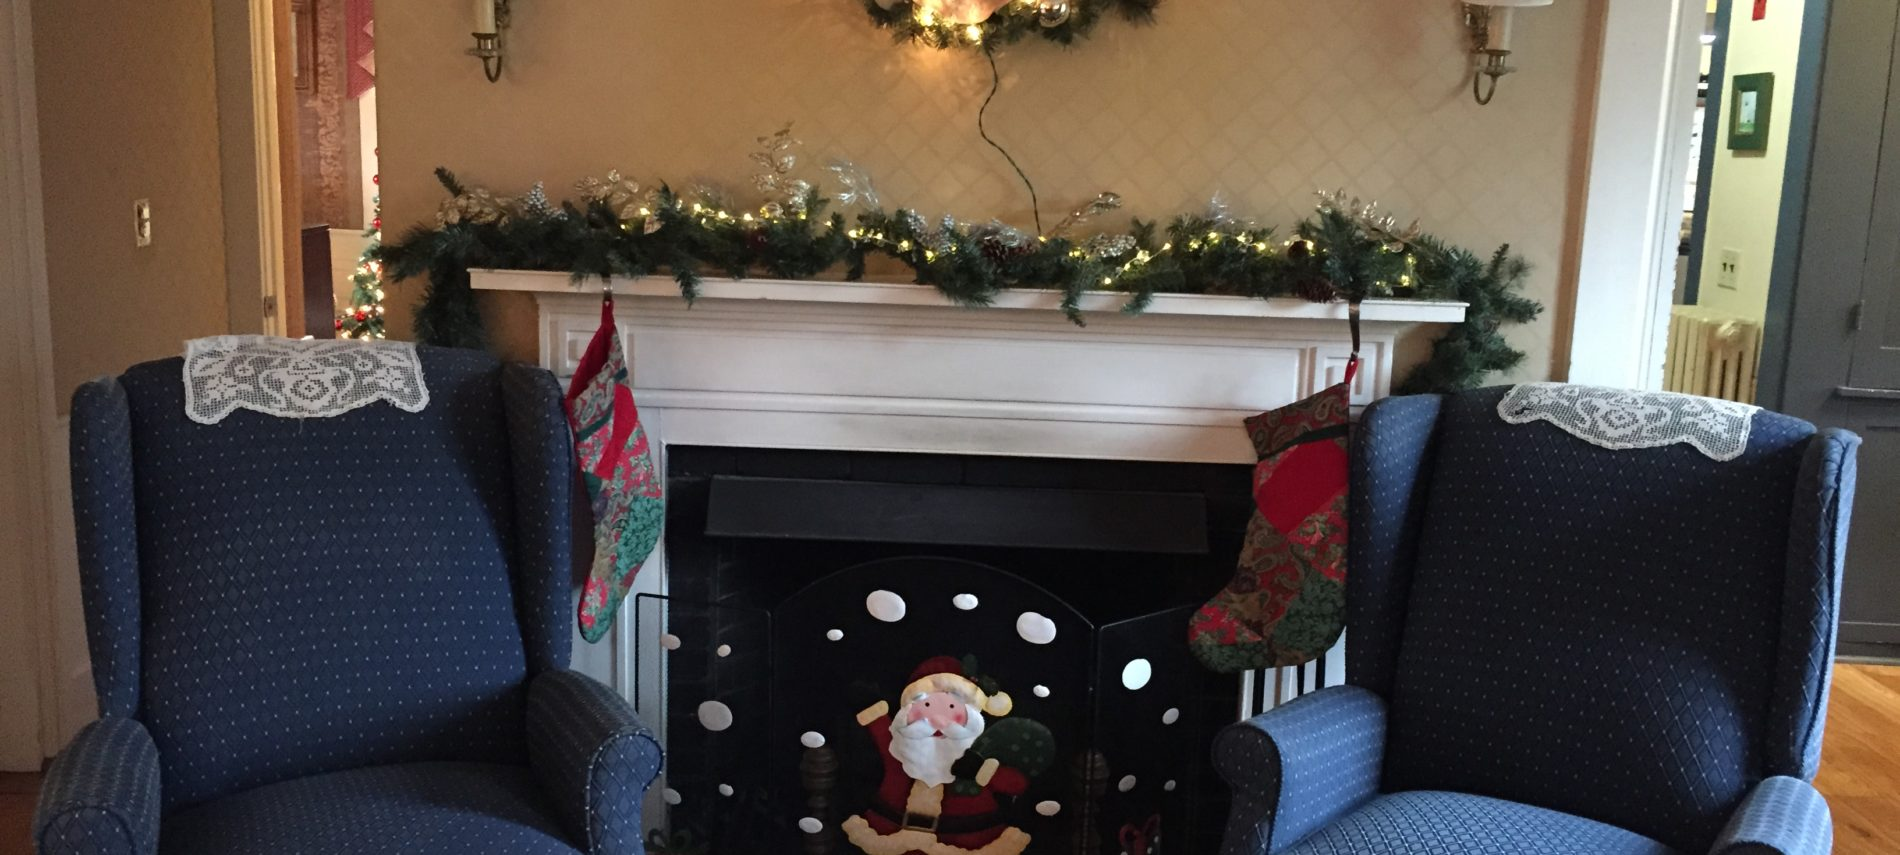 Holiday mantle and 2 chairs at Captain's House Inn